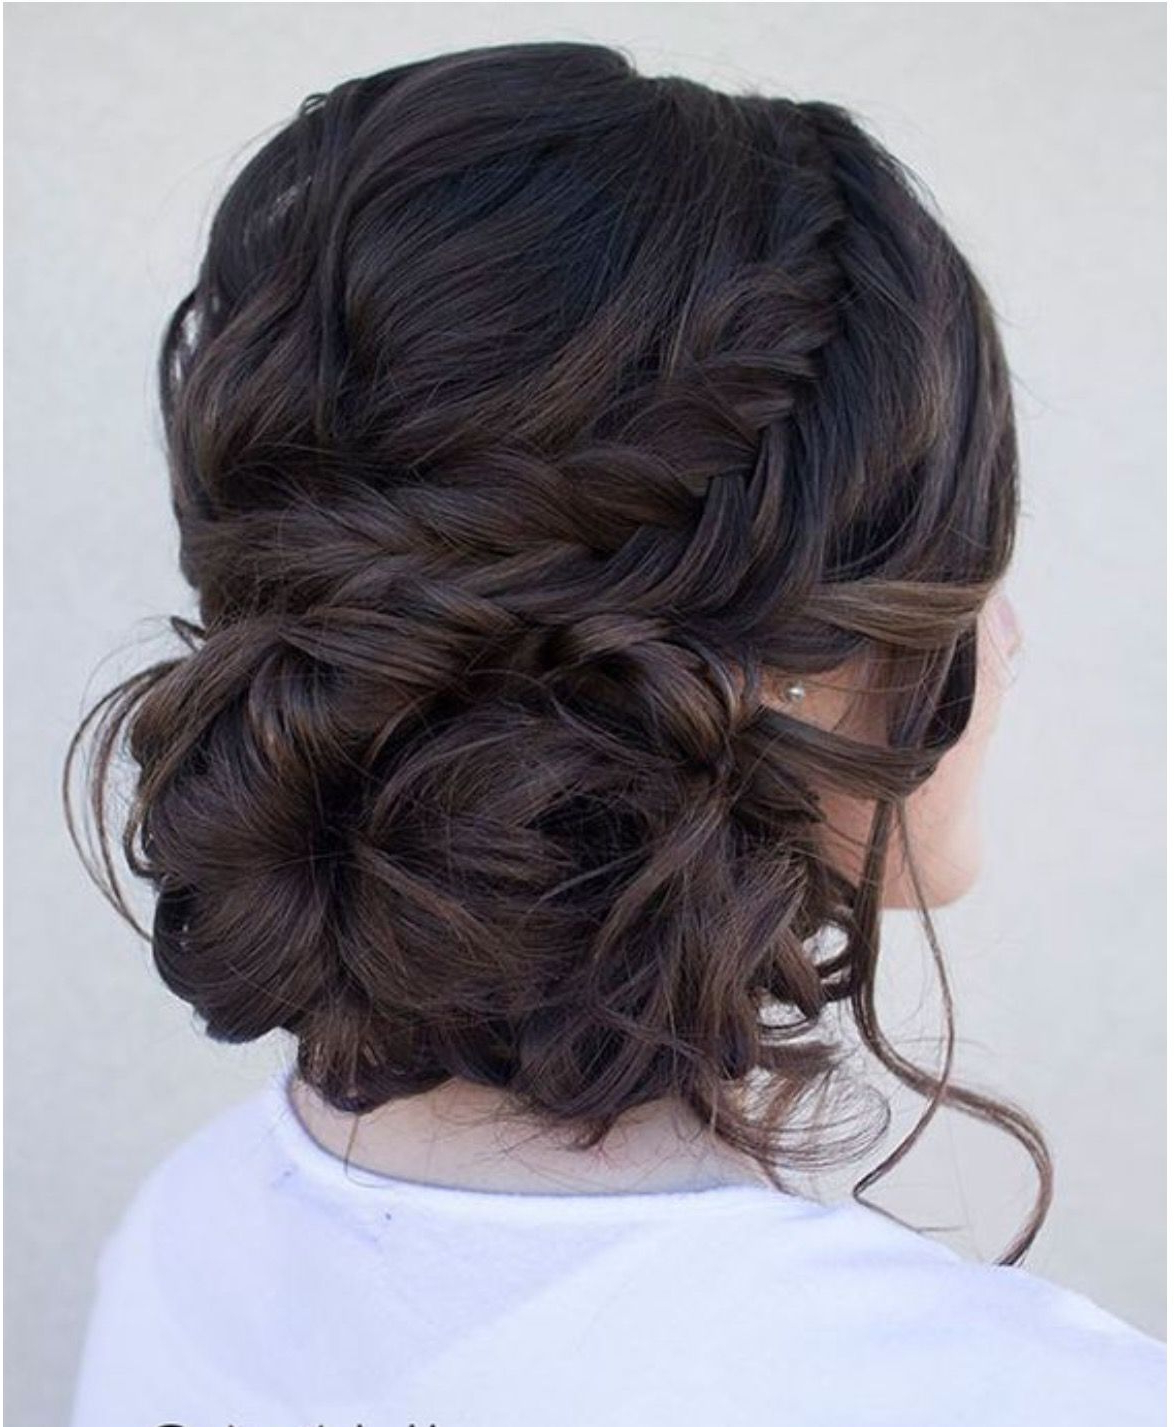 Preferred Curled Updo Hairstyles With Regard To Sam Updo On Dark Brown Hair As Opposed To Highlighted (Gallery 11 of 20)